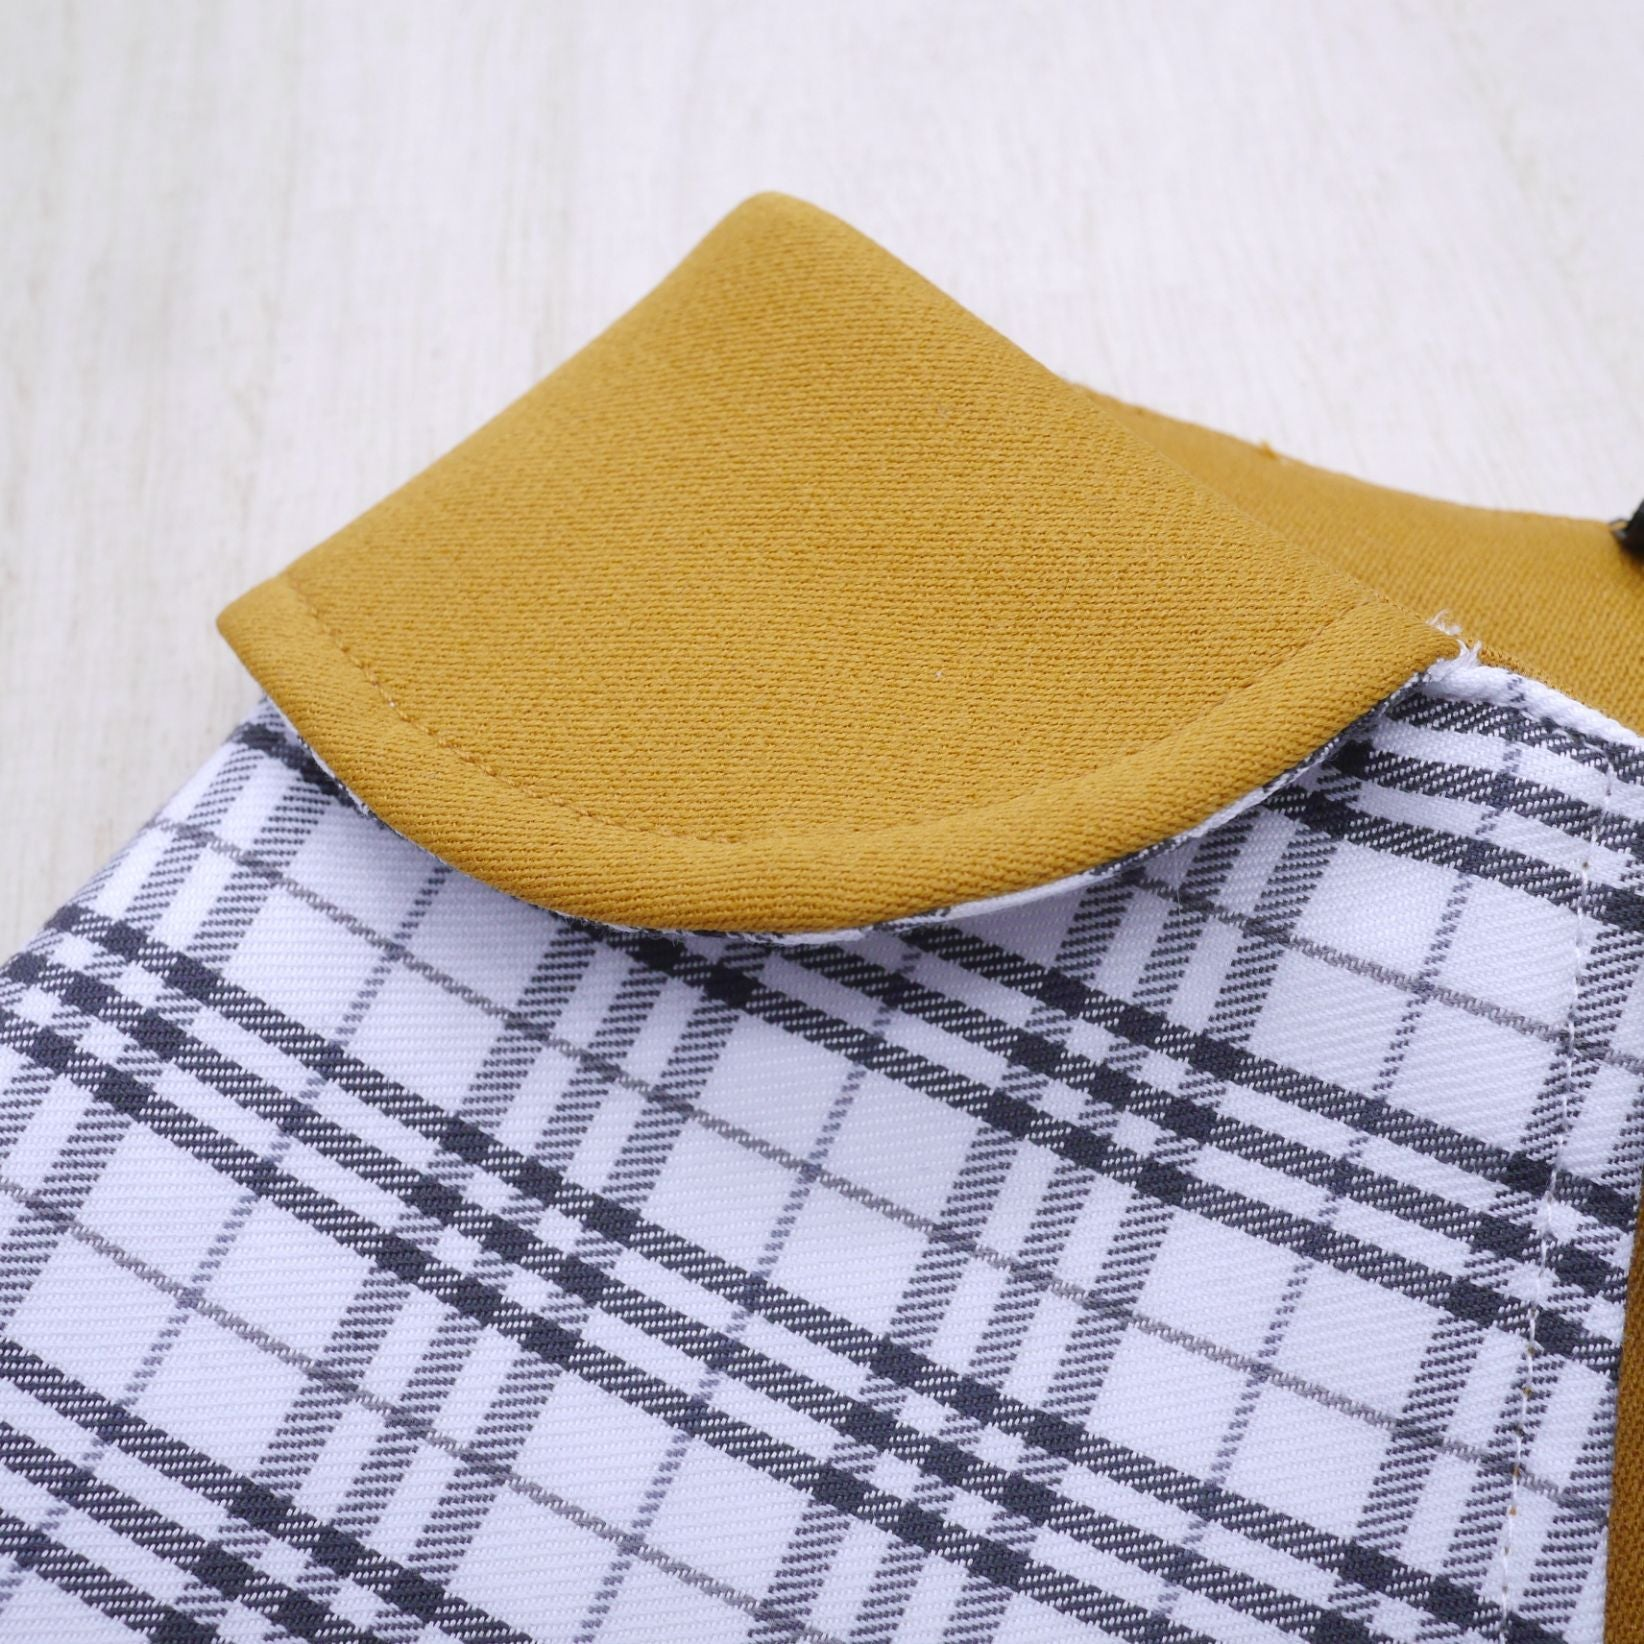 Capes - Mustard Collar with White Tartan Print - The Pet's Couture